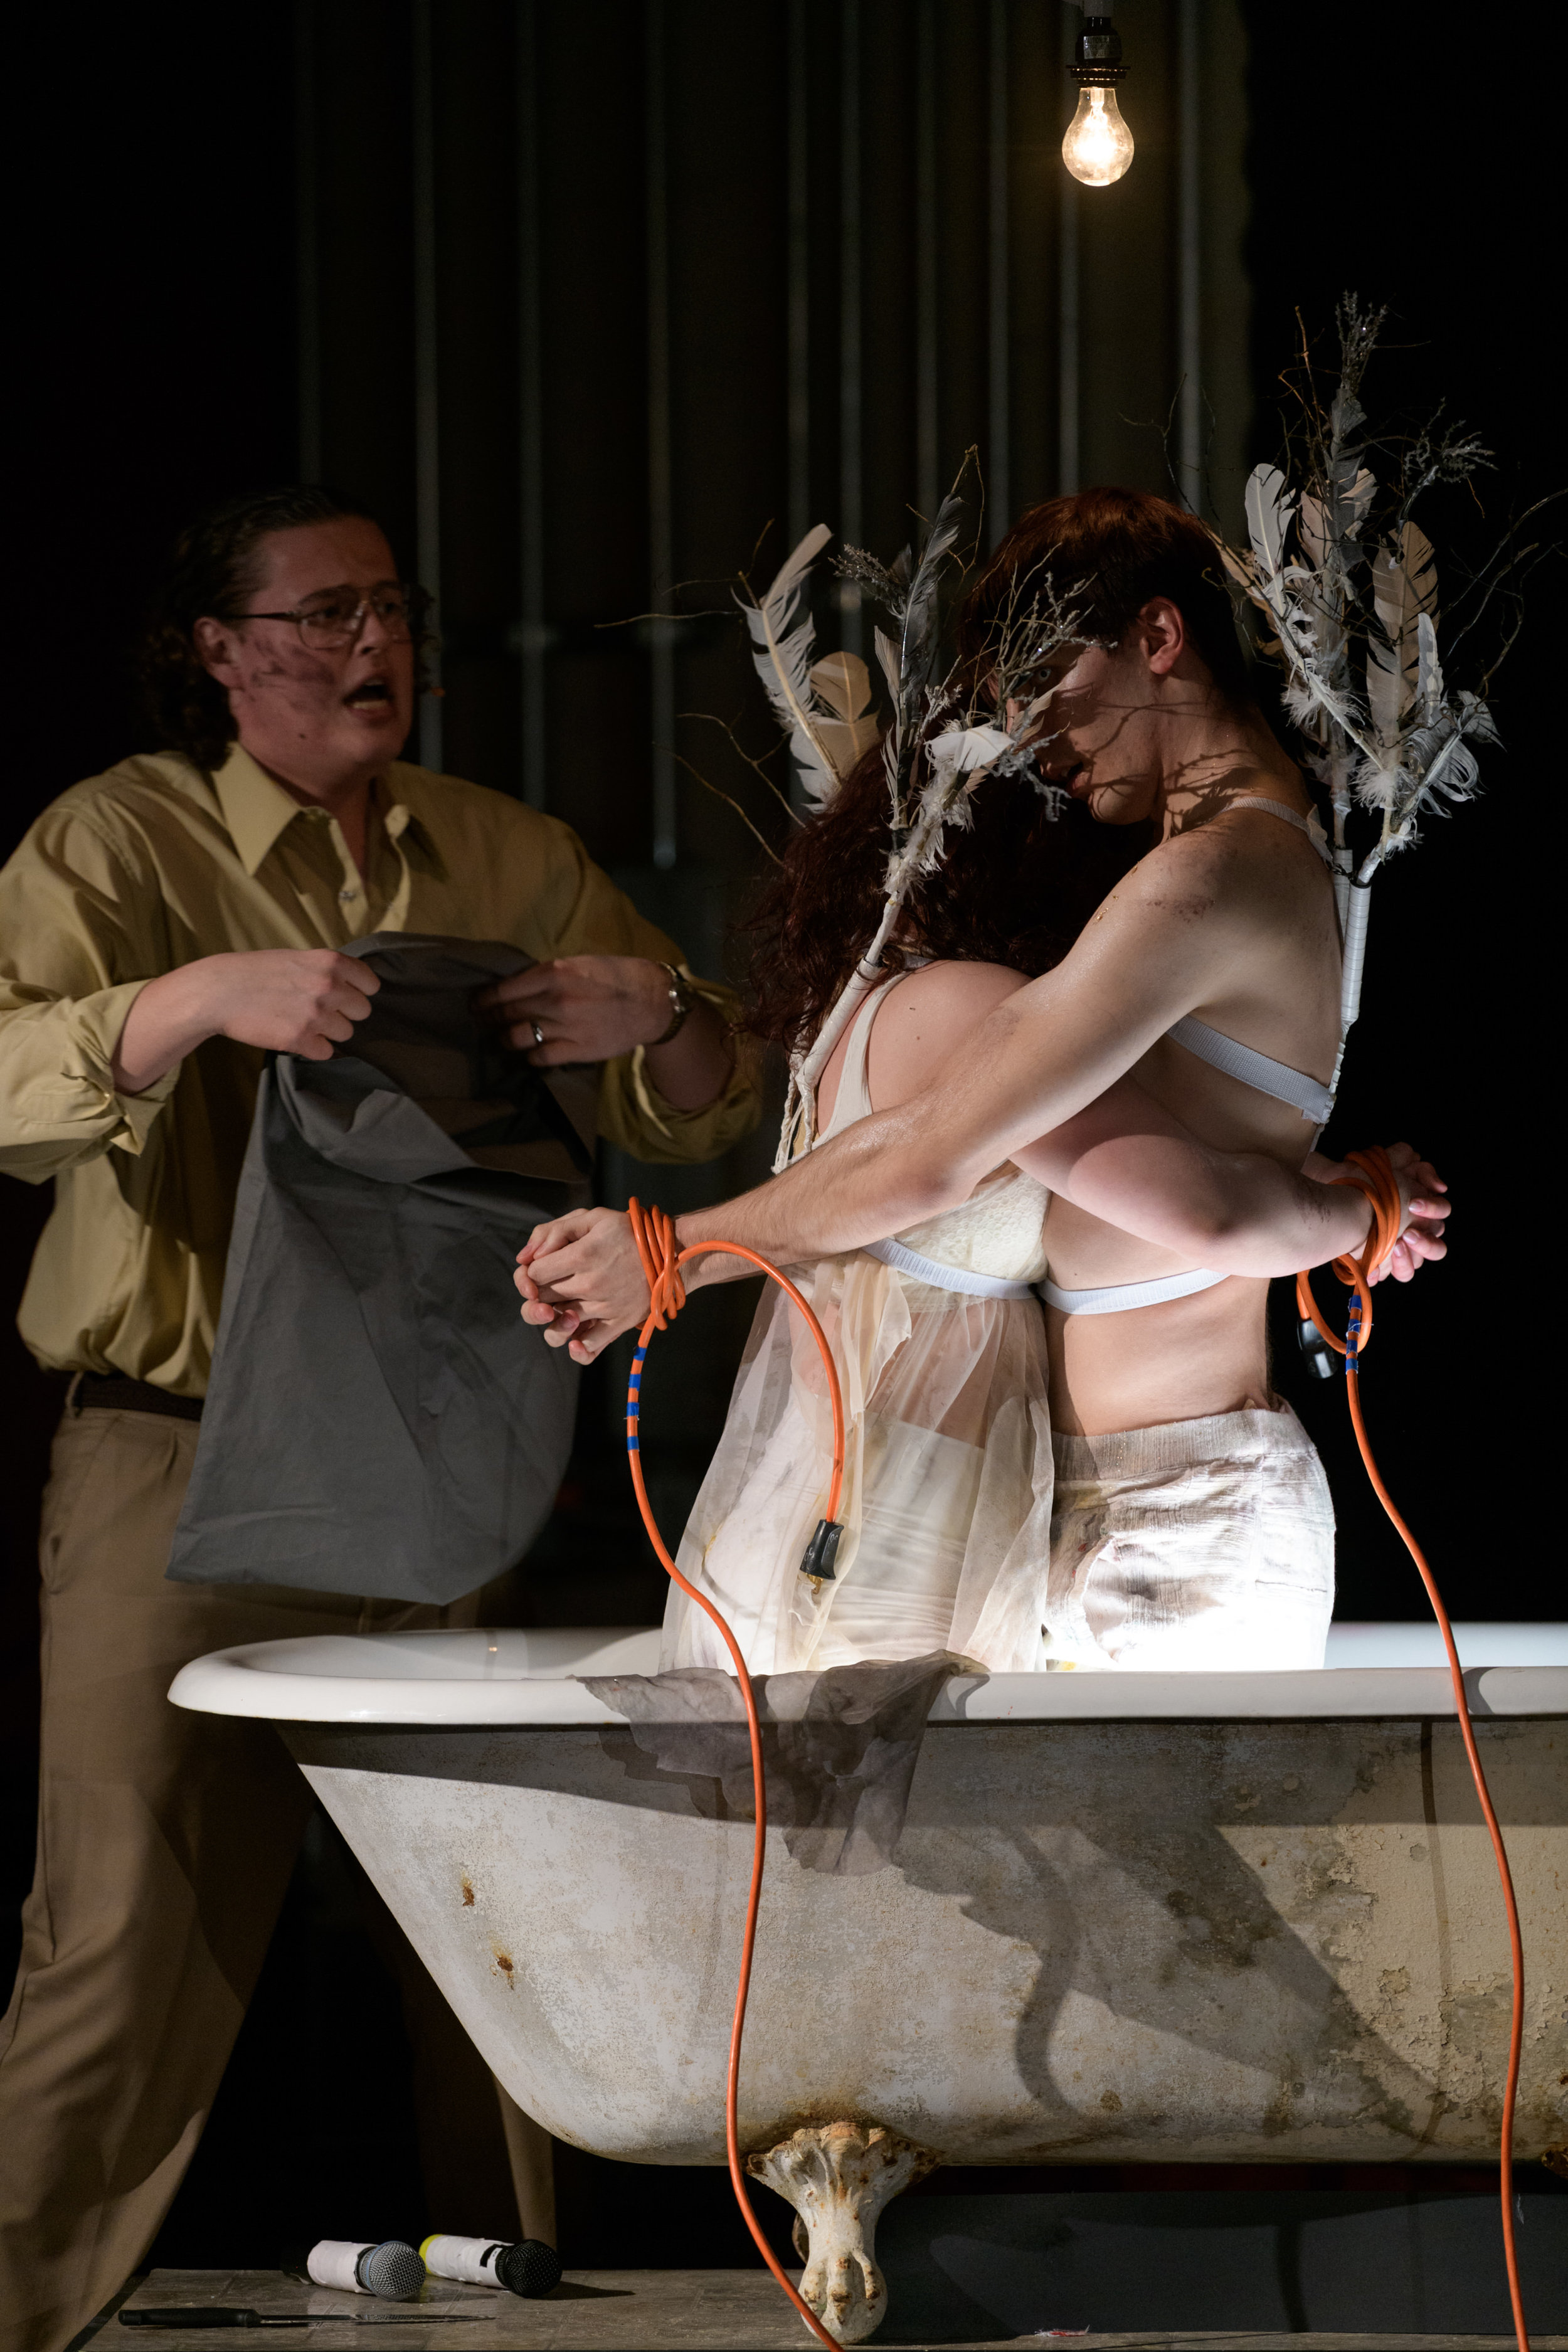 """The angels, restrained in a bathtub, are readied by baritone Shawn Roth, as Mr. X.E.,for """"pruning."""""""